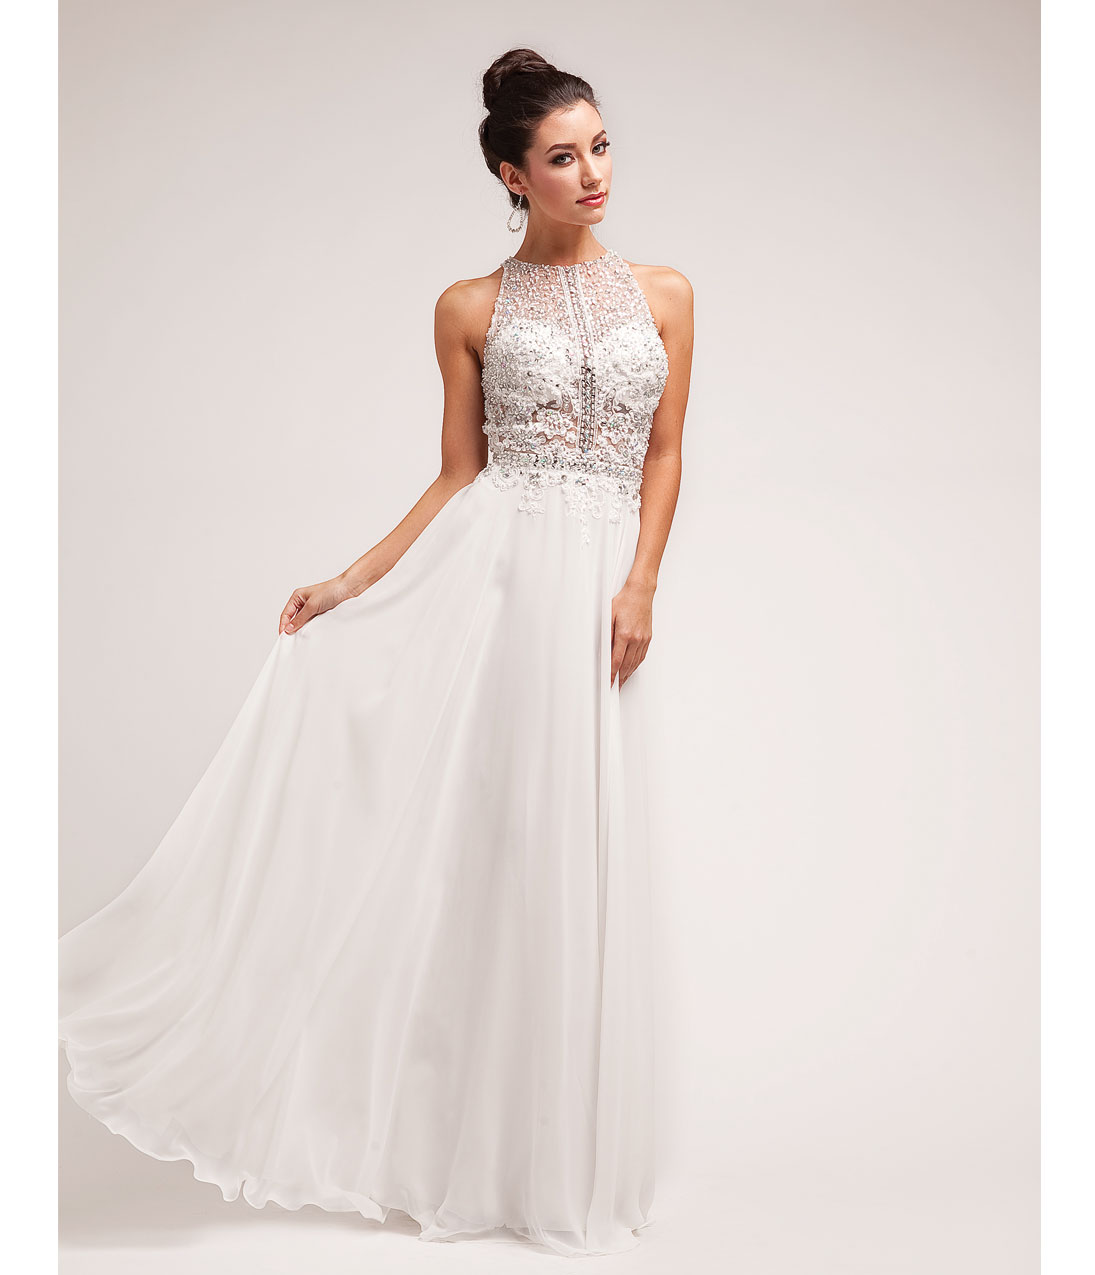 white lace prom dress 1930s style prom dresses, formal dresses, evening gowns. preorder - off  white beaded WXMQJXO